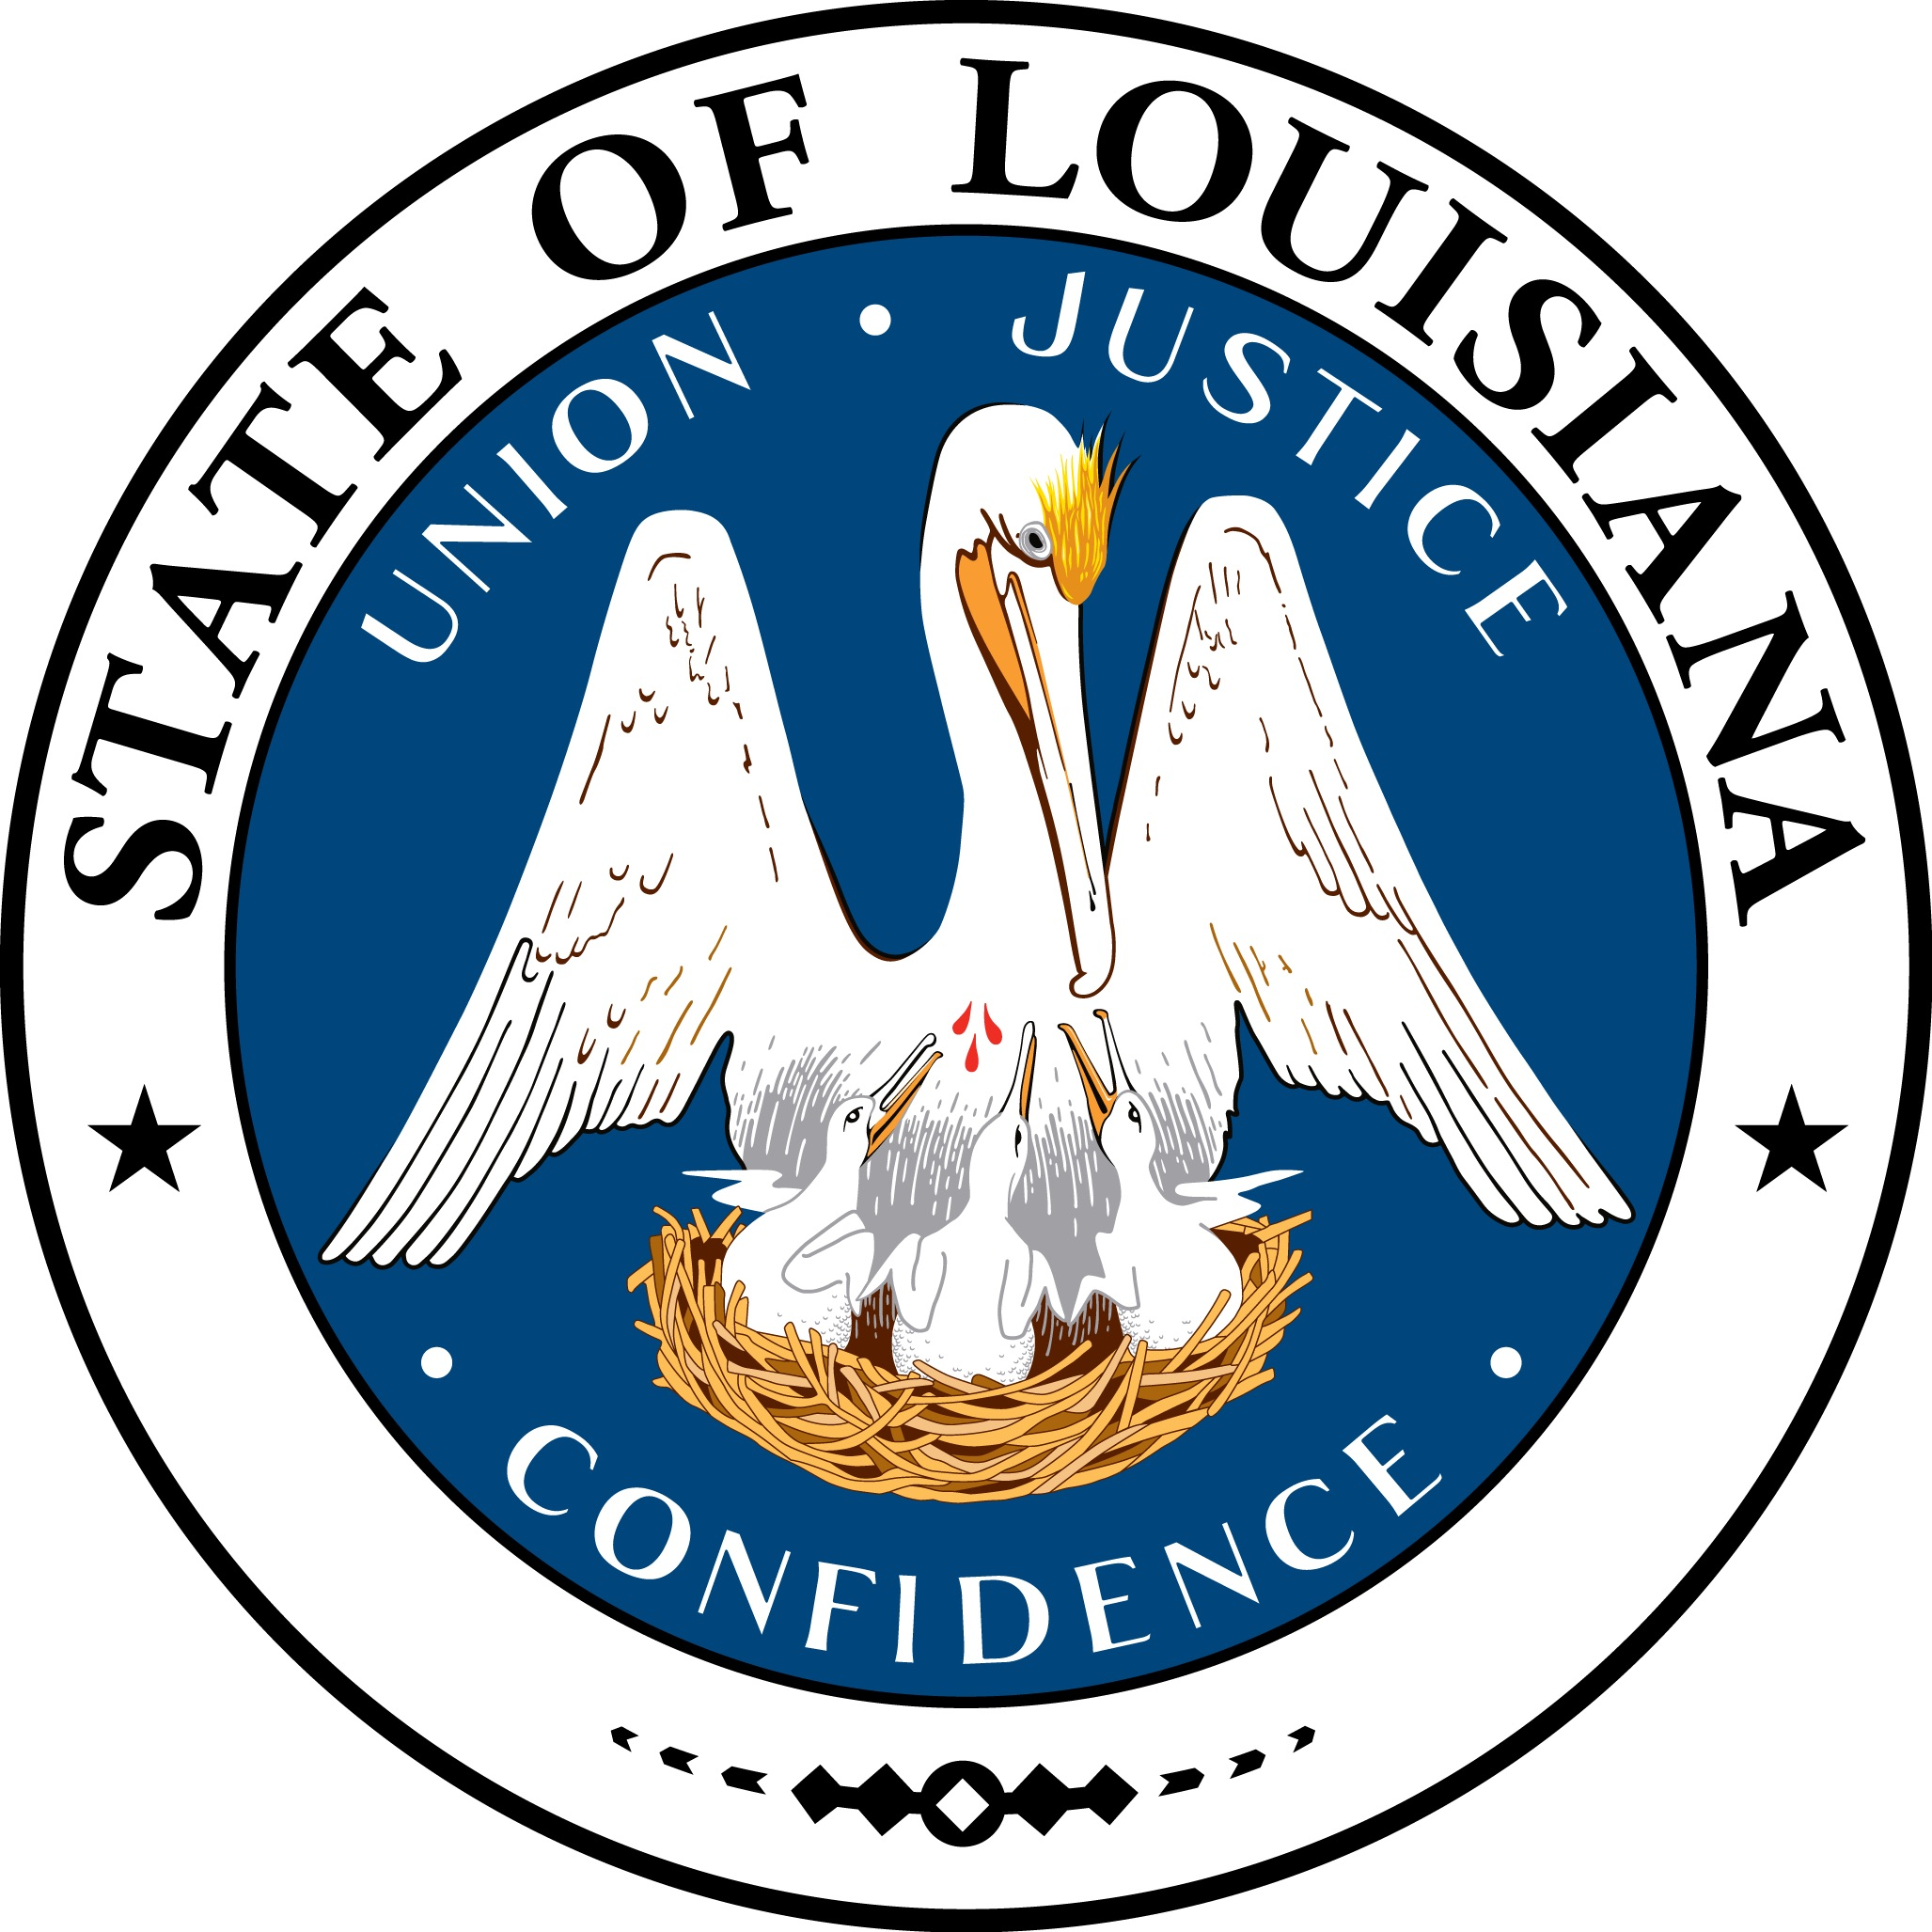 Photo source: Louisiana.gov